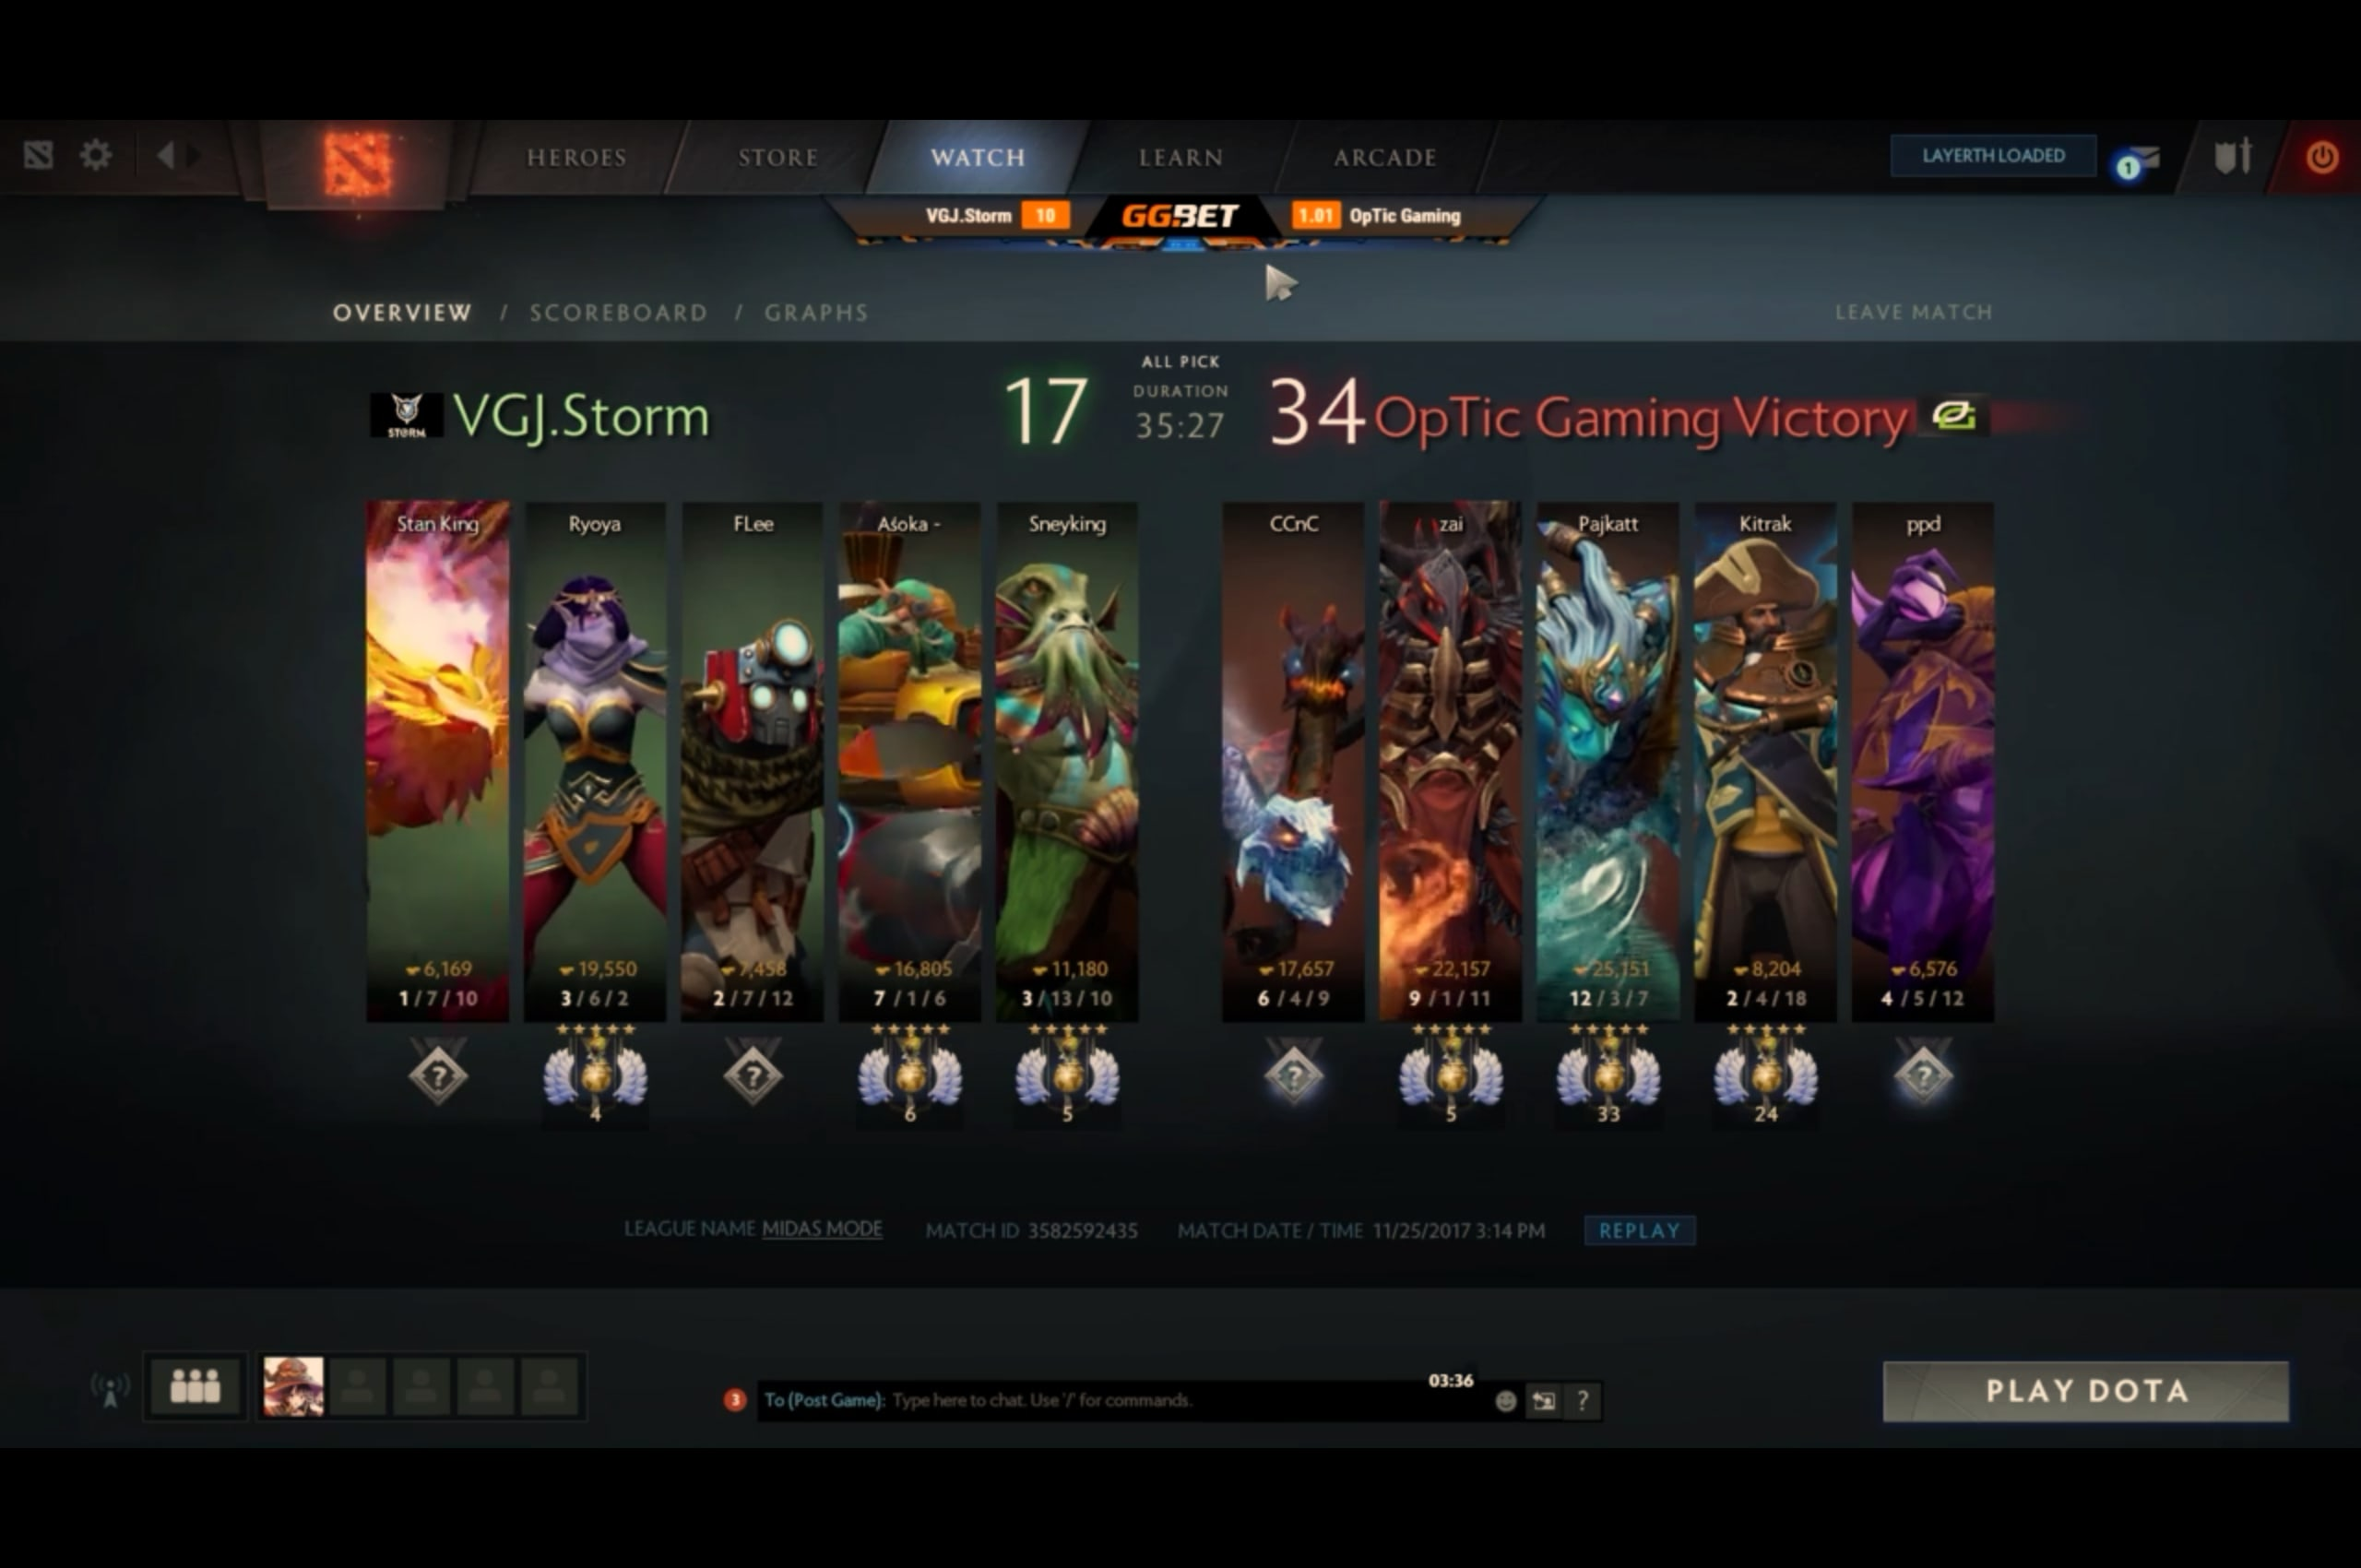 Dota 2 MMR: You can now see player medals in post-game scoreboards.